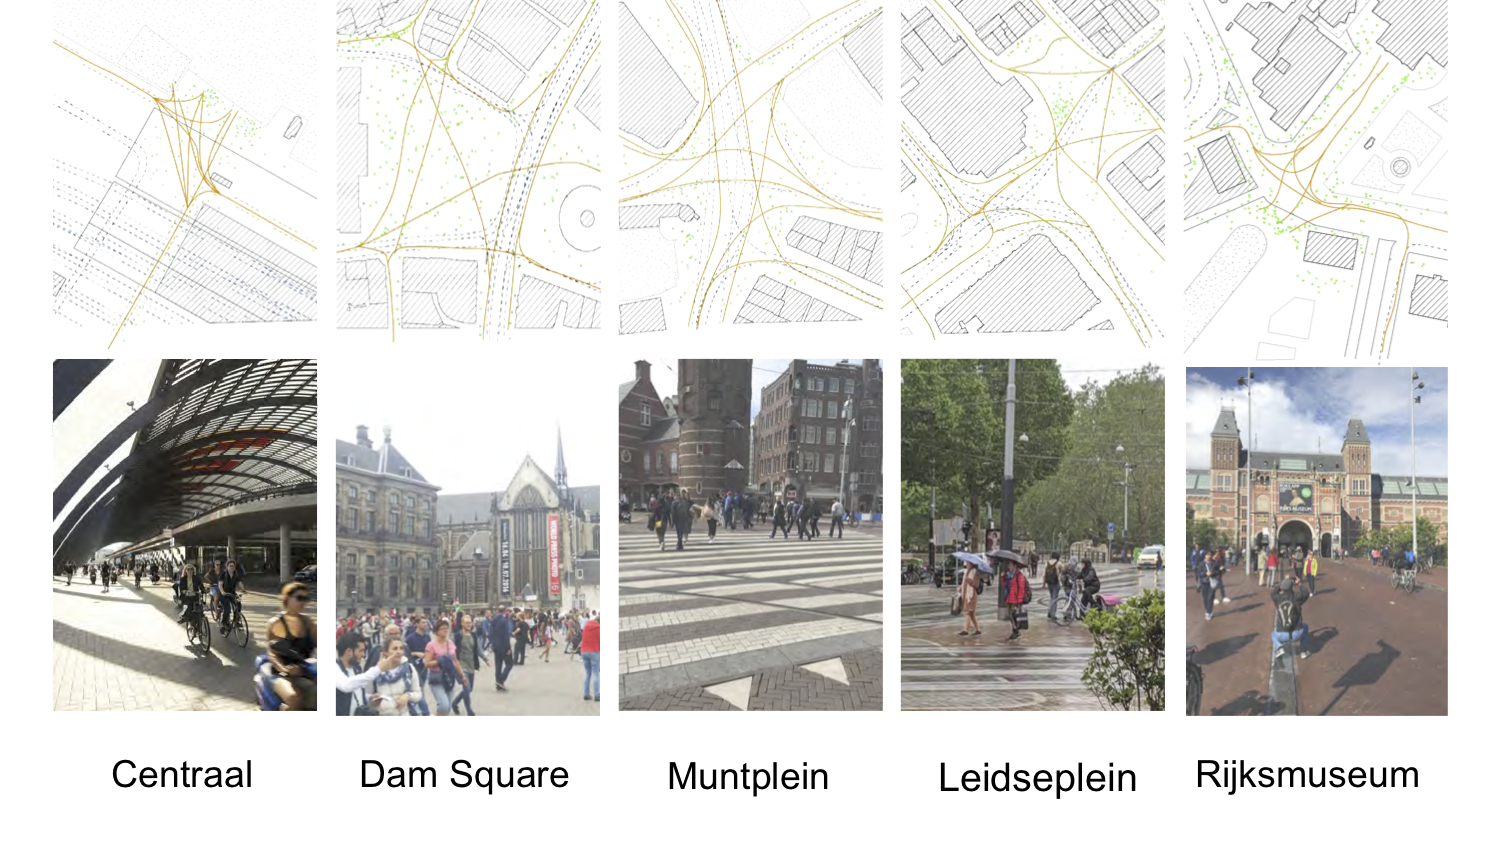 Students explored 5 of the busiest intersections in Amsterdam to understand various systems and behaviours.